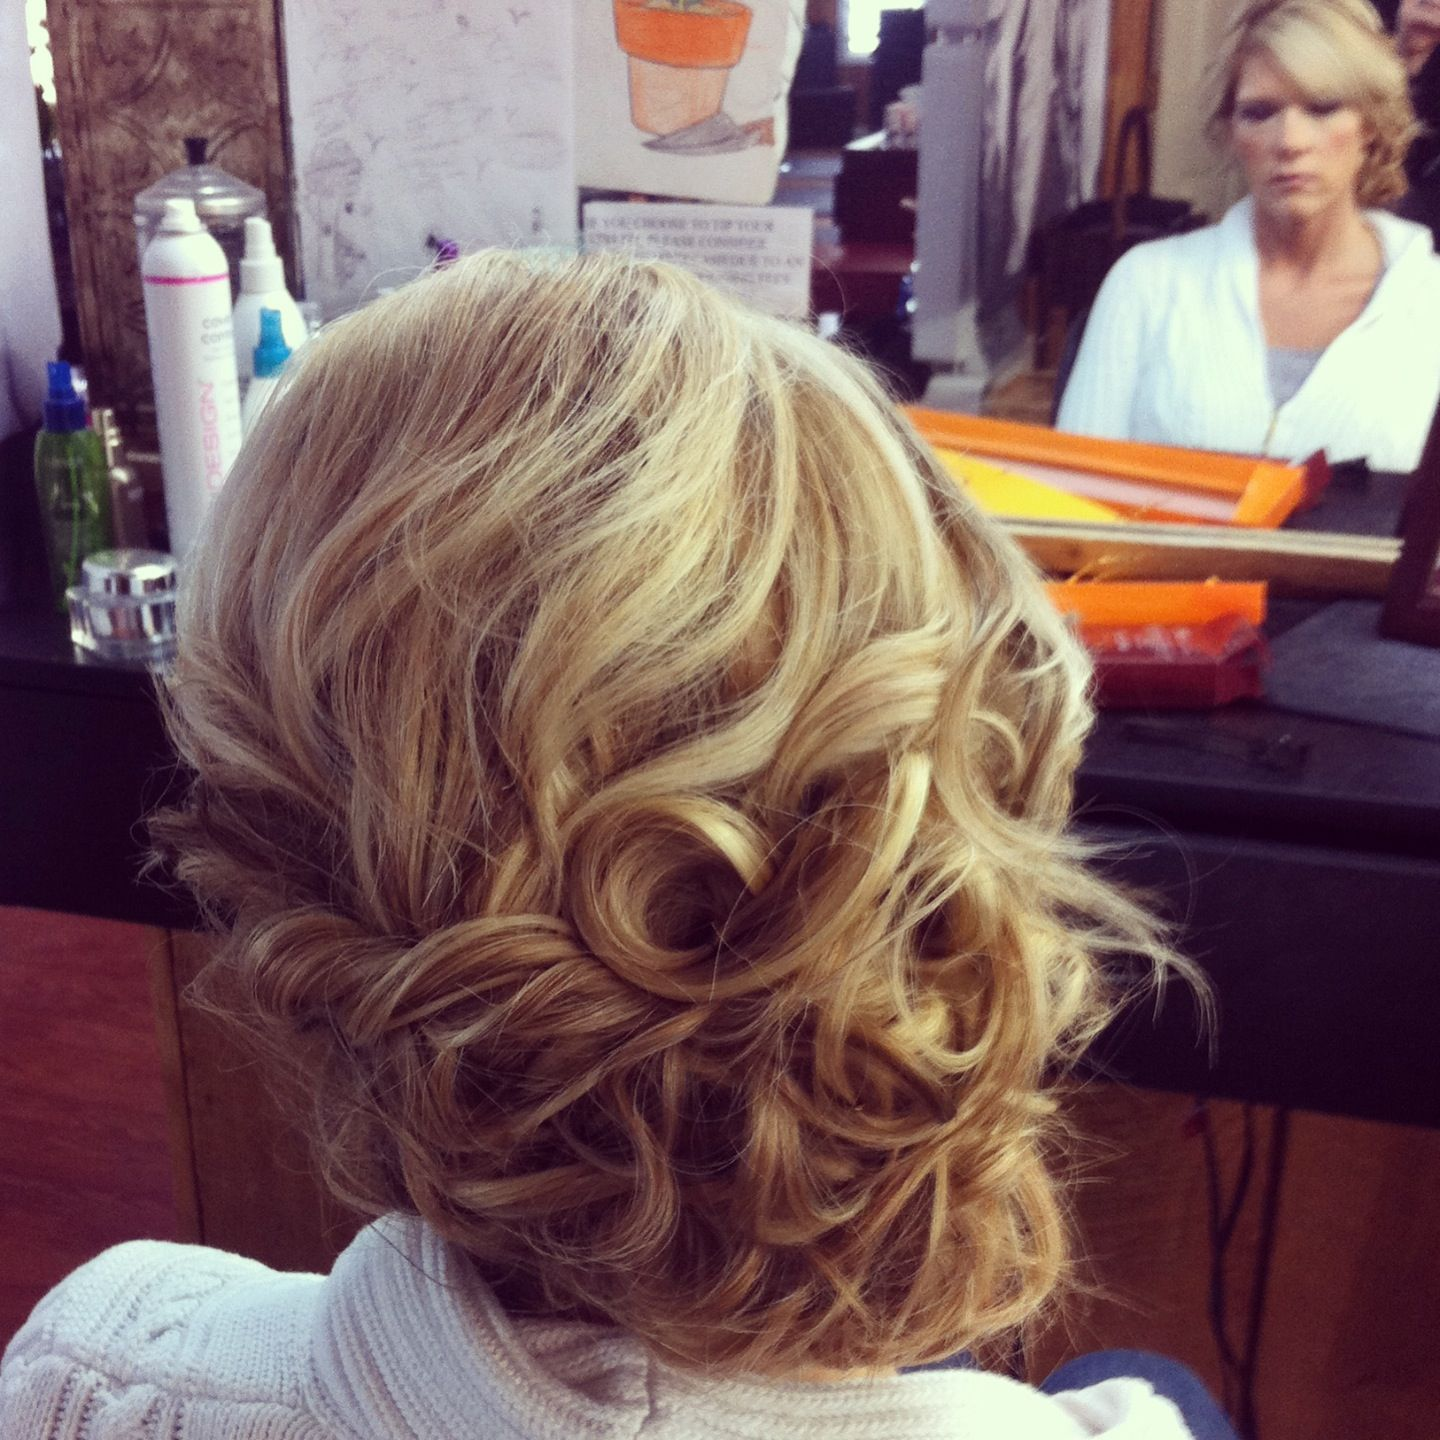 Loose Curls Side Swept Updo I Did For A Wedding